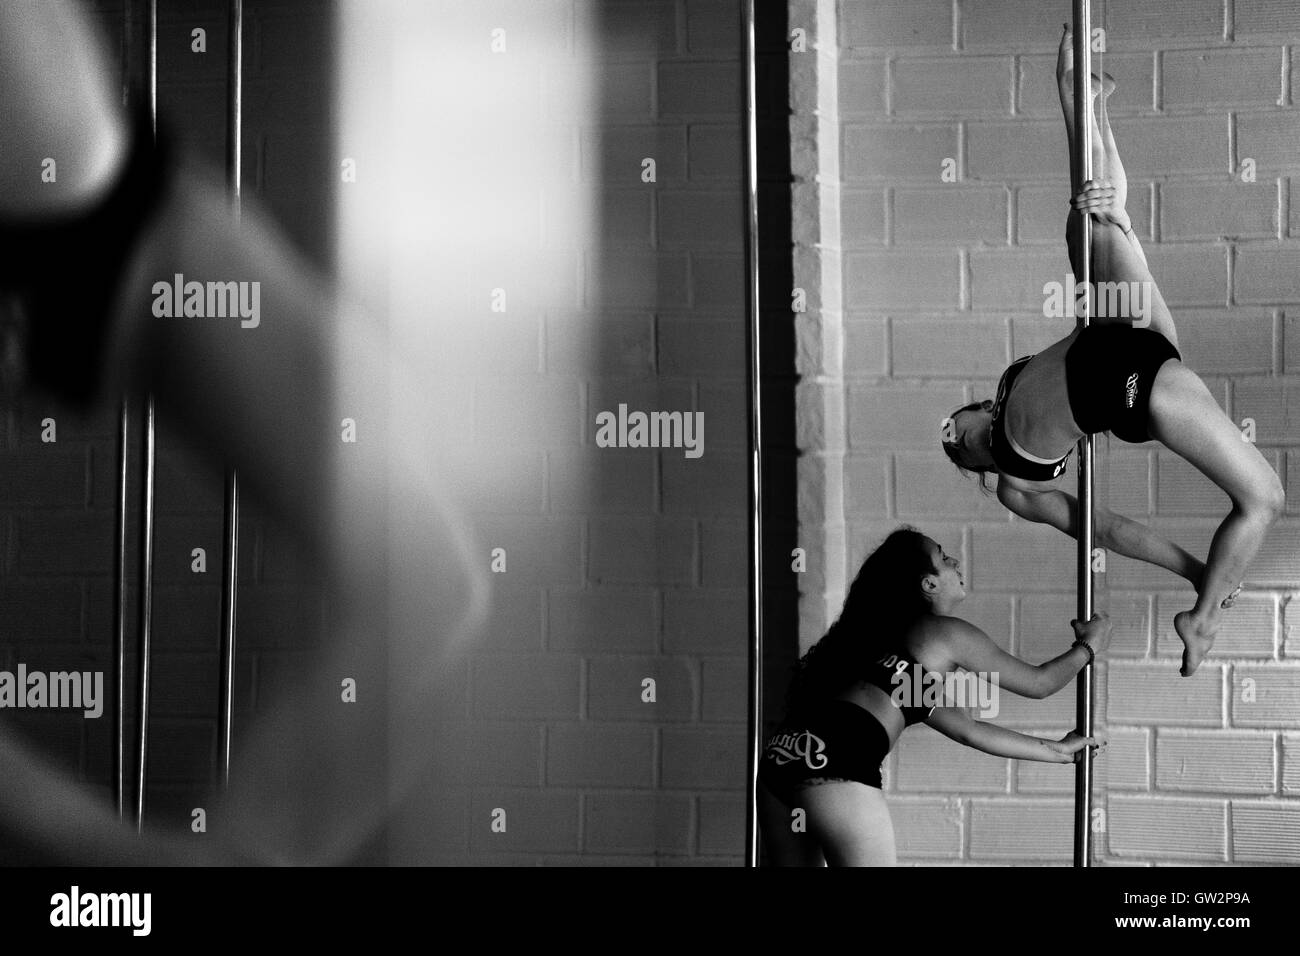 Carolina Echavarria assists Valeria Aboultaif while she performs during a pole dance training session in Academia - Stock Image